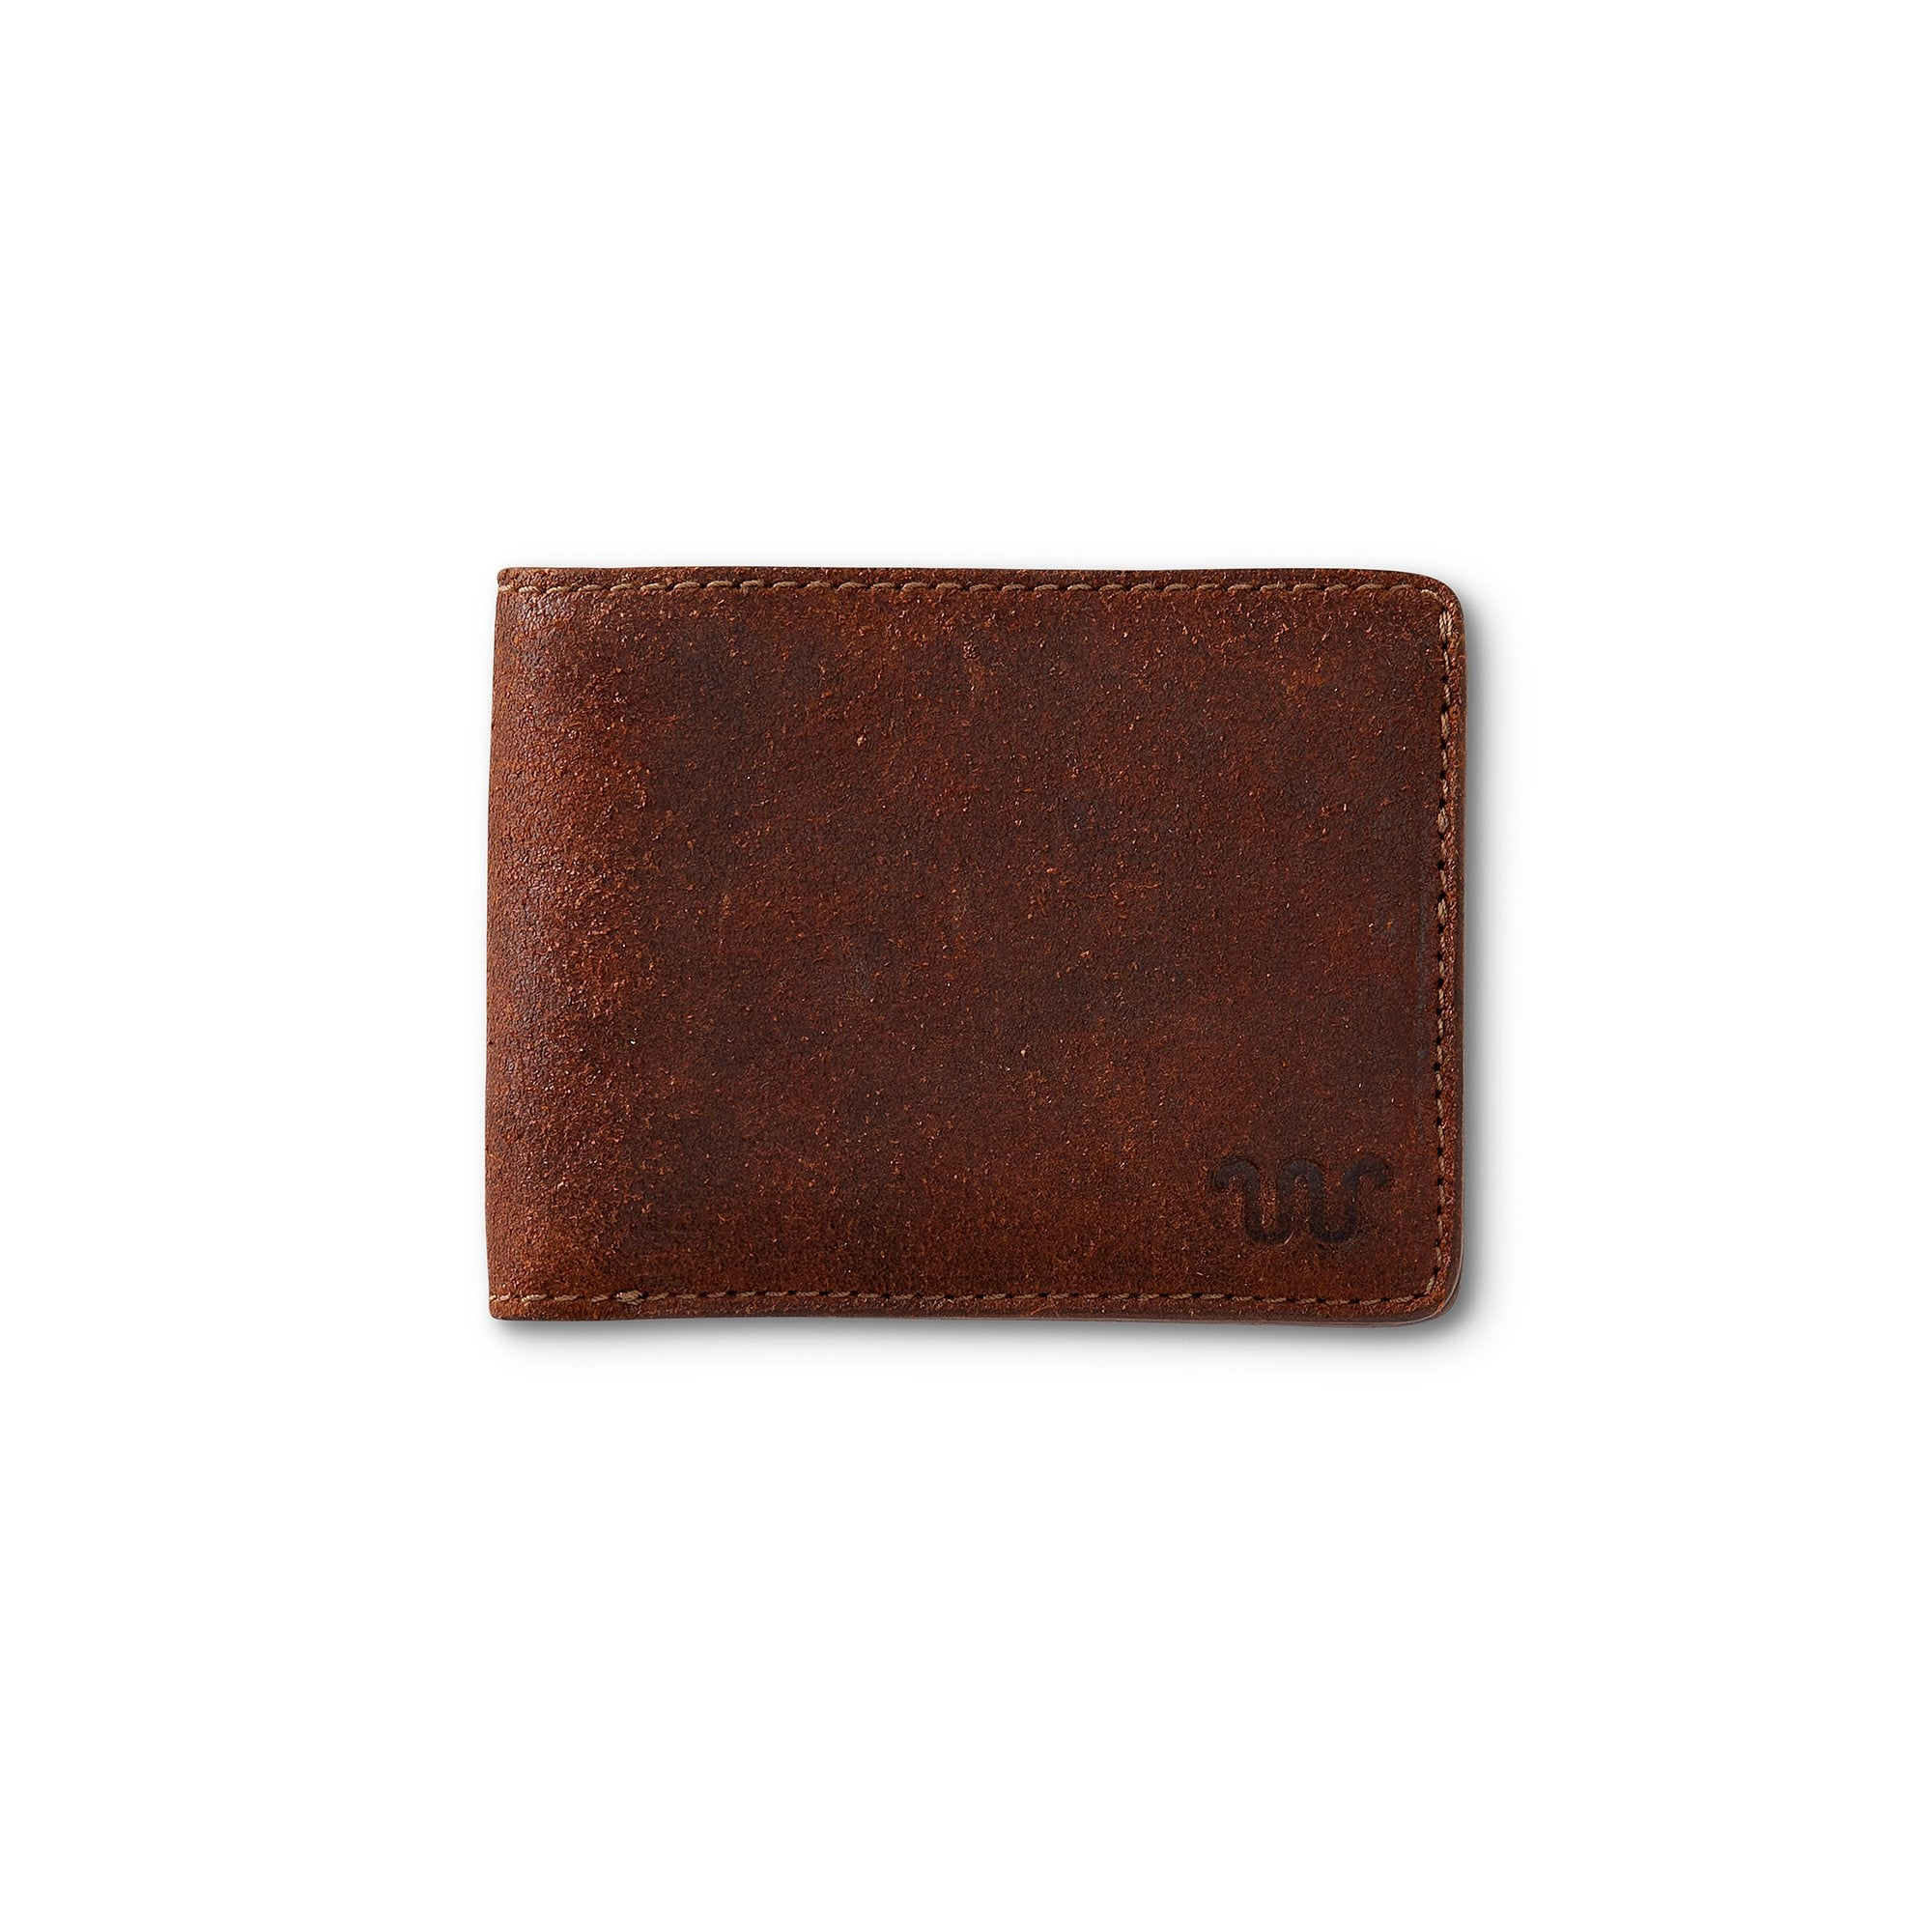 King Ranch Roughout BiFold wallet - New Ginger